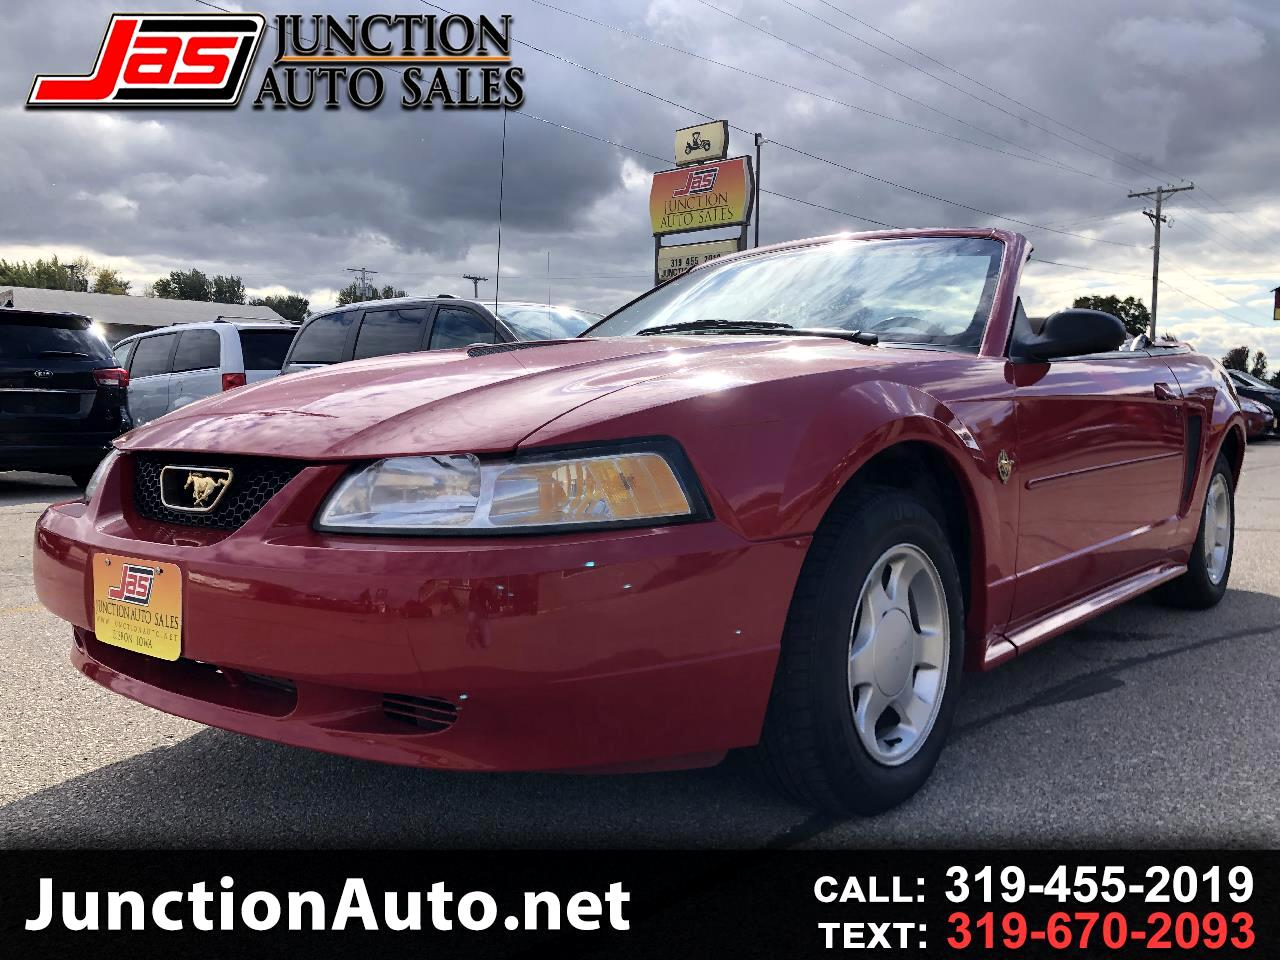 Ford Mustang Convertible 1999